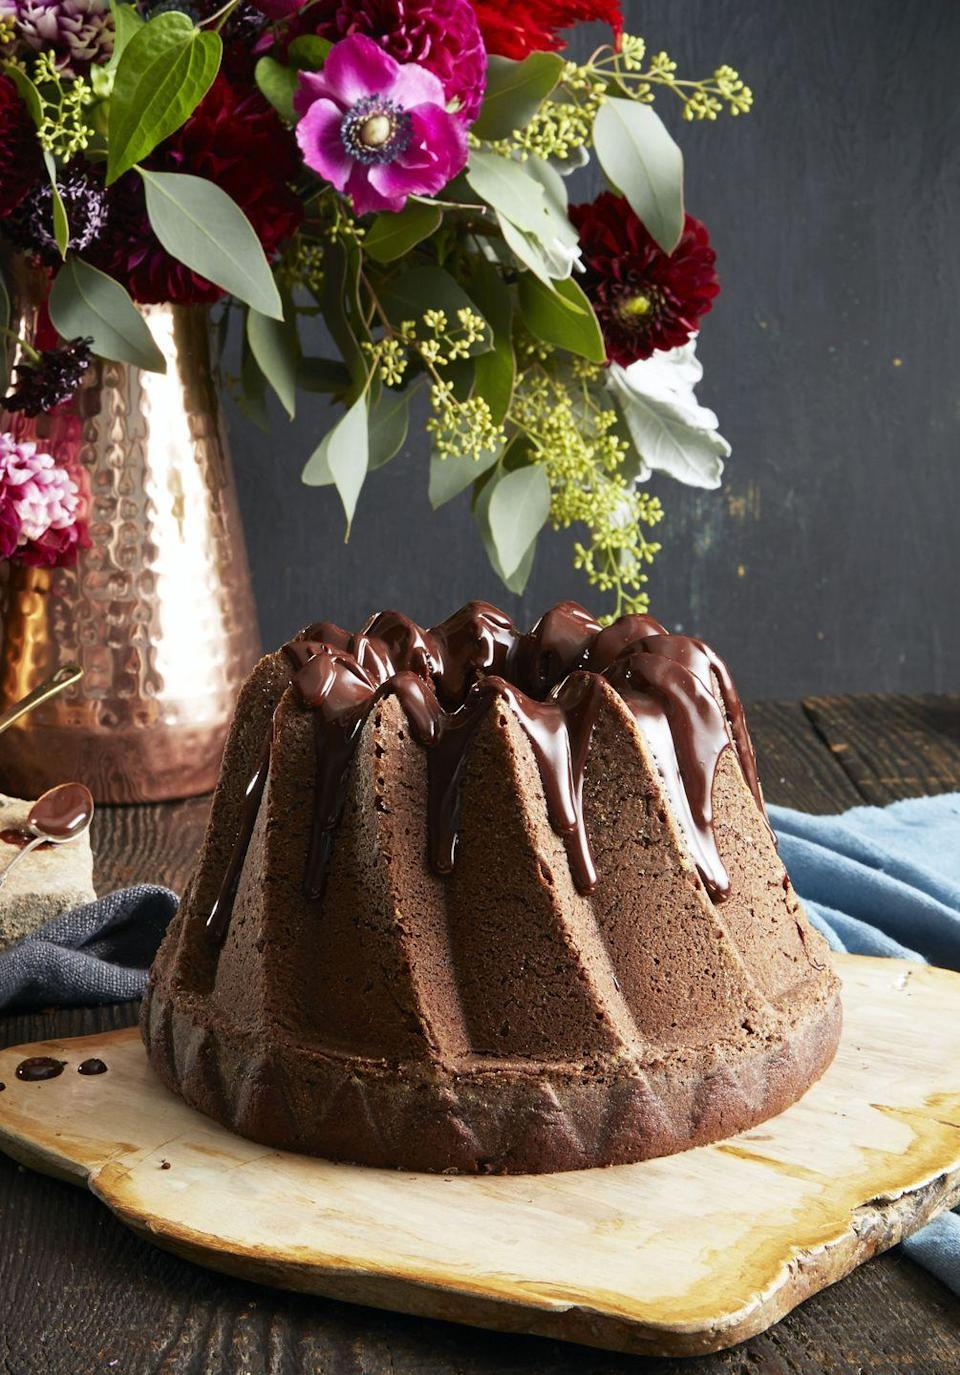 """<p>Does Mom love chocolate <em>and</em> coffee? Well, we've got her covered with this coffee-infused bundt. </p><p><em><a href=""""https://www.goodhousekeeping.com/food-recipes/dessert/a35180/double-chocolate-bundt/"""" rel=""""nofollow noopener"""" target=""""_blank"""" data-ylk=""""slk:Get the recipe for Double Chocolate Bundt »"""" class=""""link rapid-noclick-resp"""">Get the recipe for Double Chocolate Bundt »</a></em></p>"""